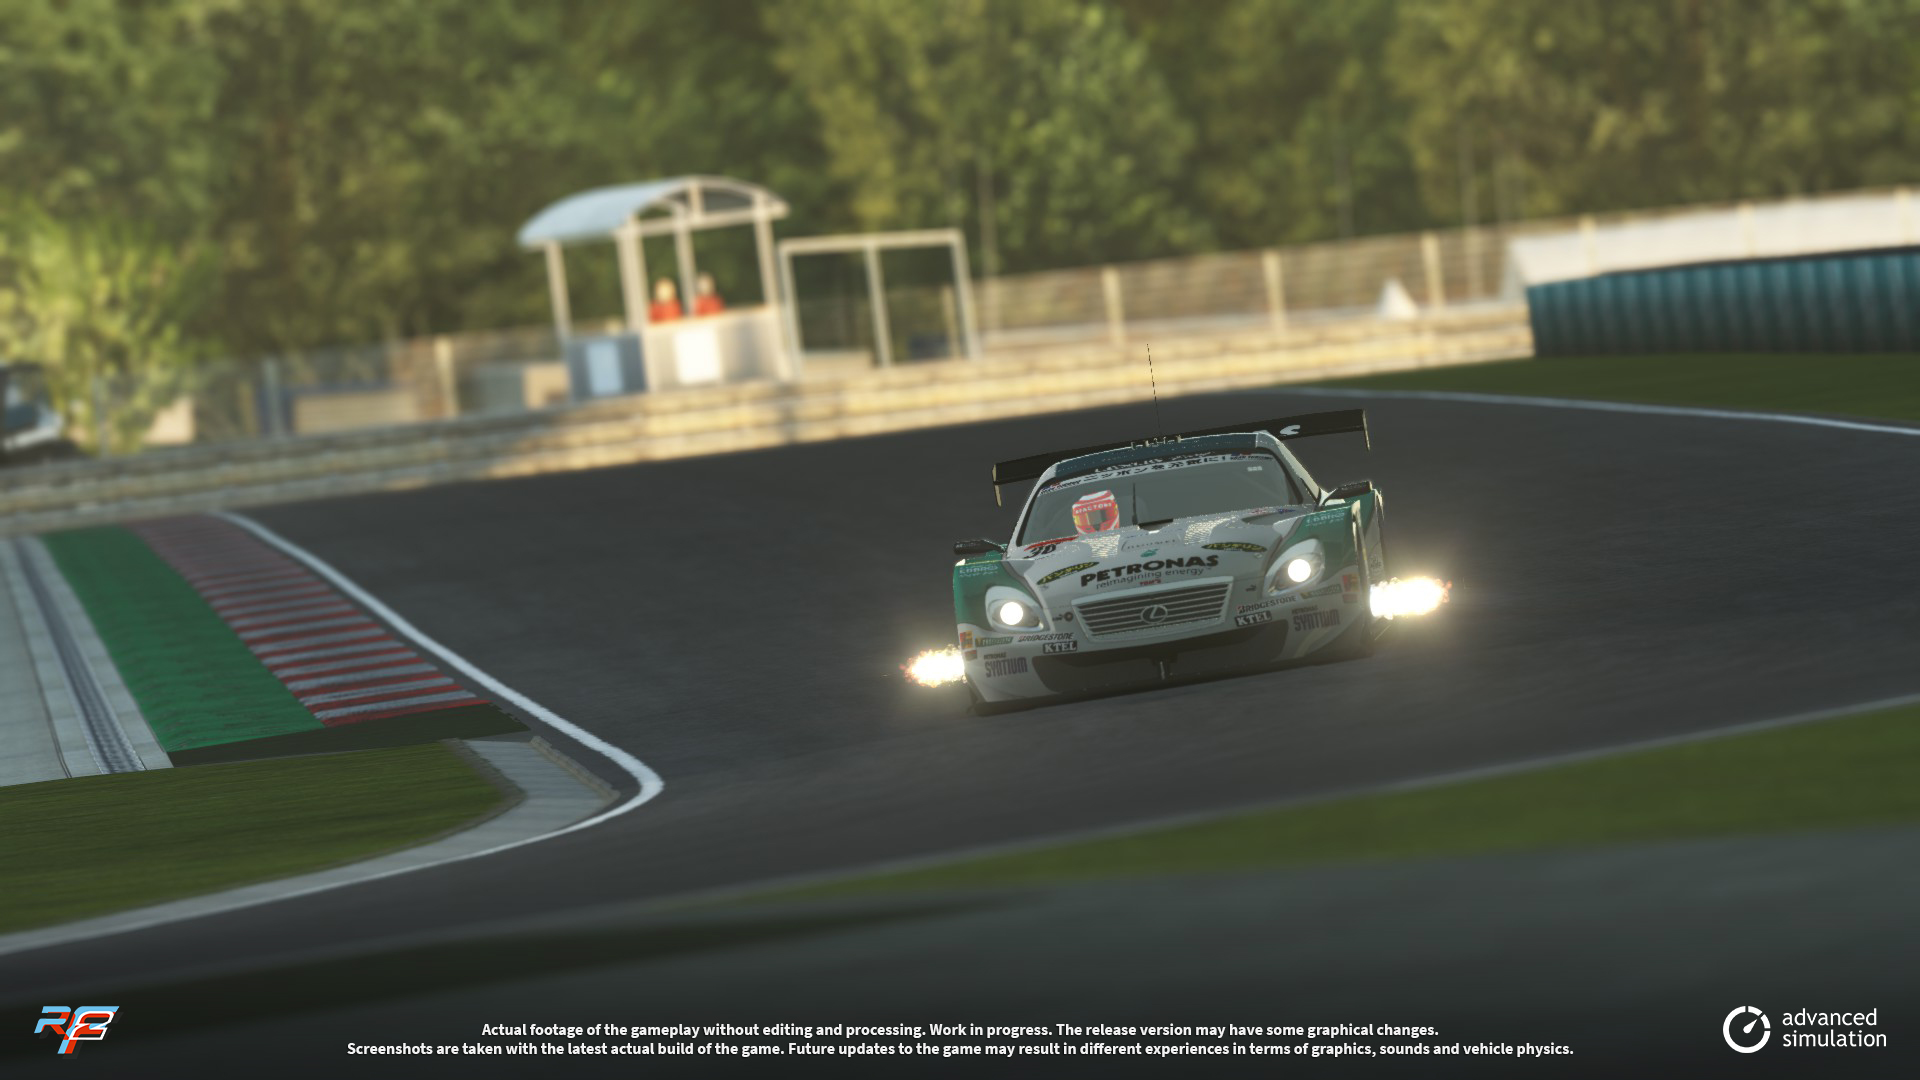 030 URD SuperGT 2013 for rFactor 2 – New Lexus Previews